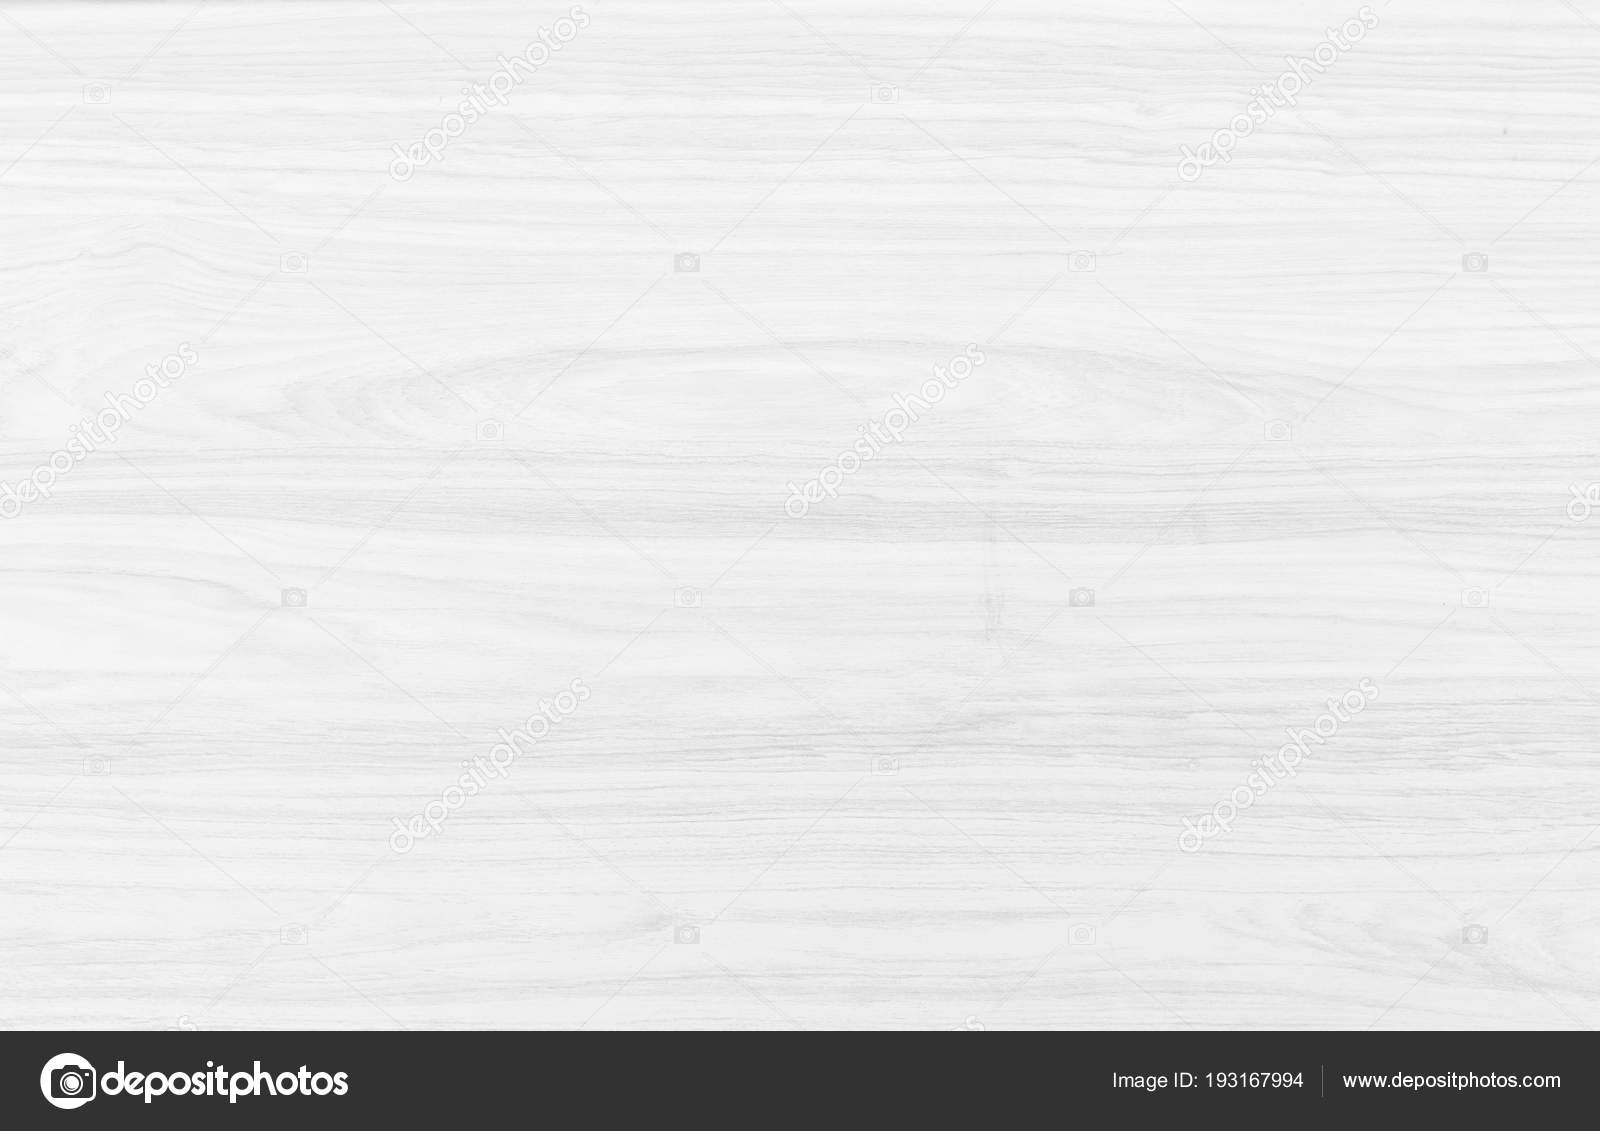 Abstract Close Bright Wood Texture White Light Natural Color Background Stock Photo C Golfmhee 193167994